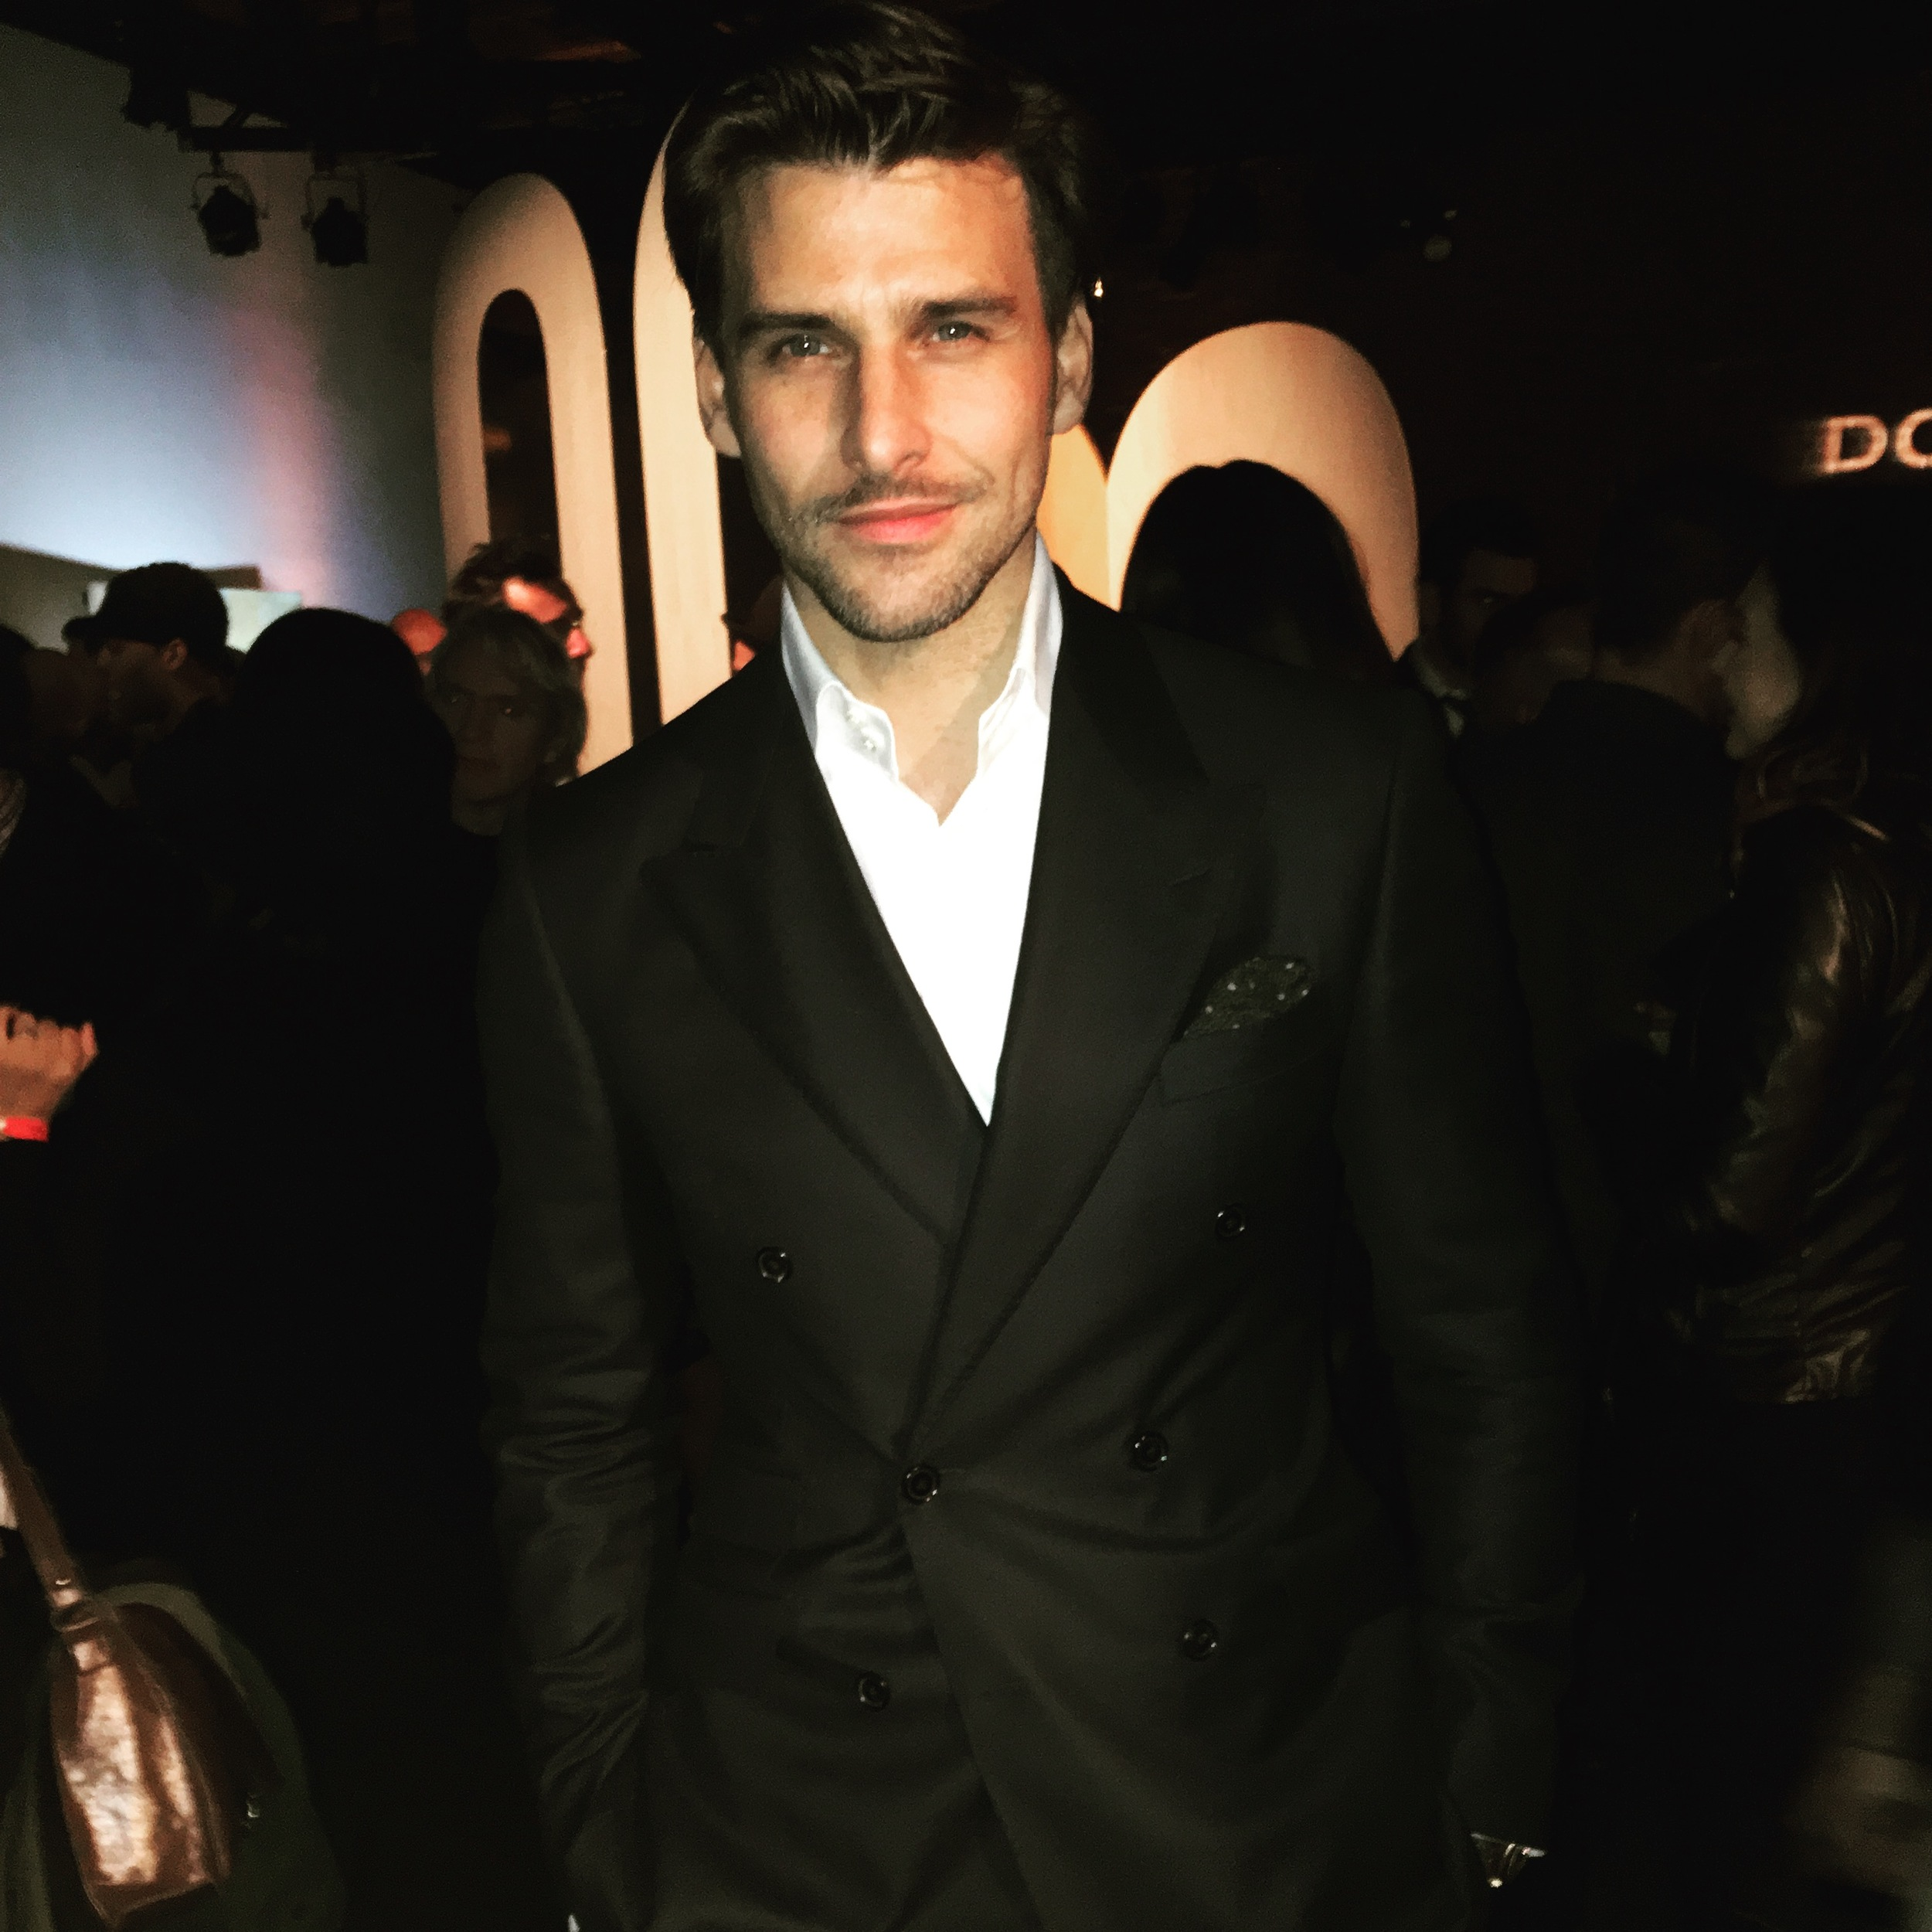 Johannes at the Fall/Winter 2016 launch party.